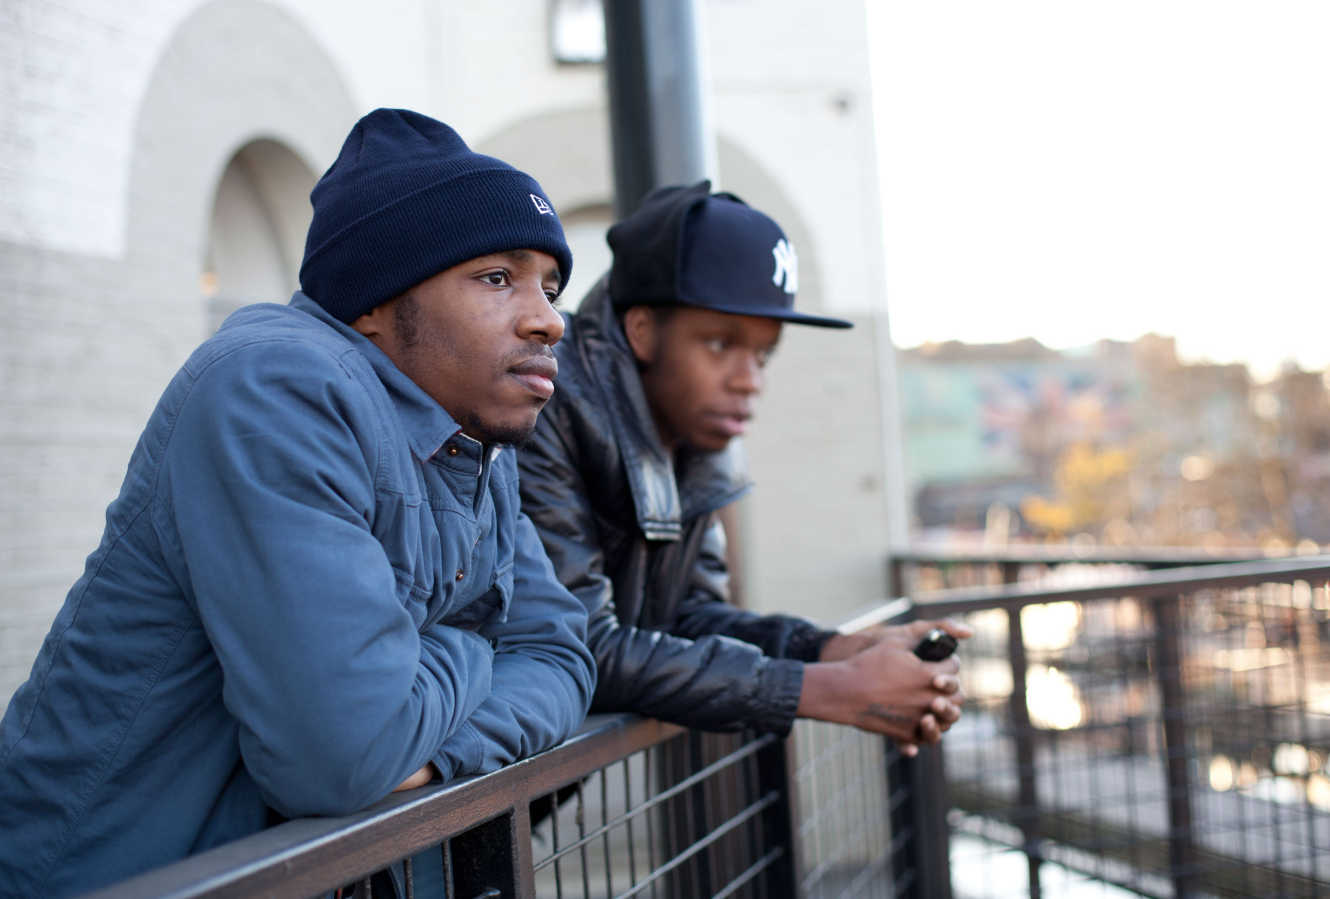 'KREPT & KONAN' RELEASE DOCUMENTARY ABOUT THEIR RISE TO SUCCESS & RELEASE OF THEIR FIRST MAJOR ALBUM!